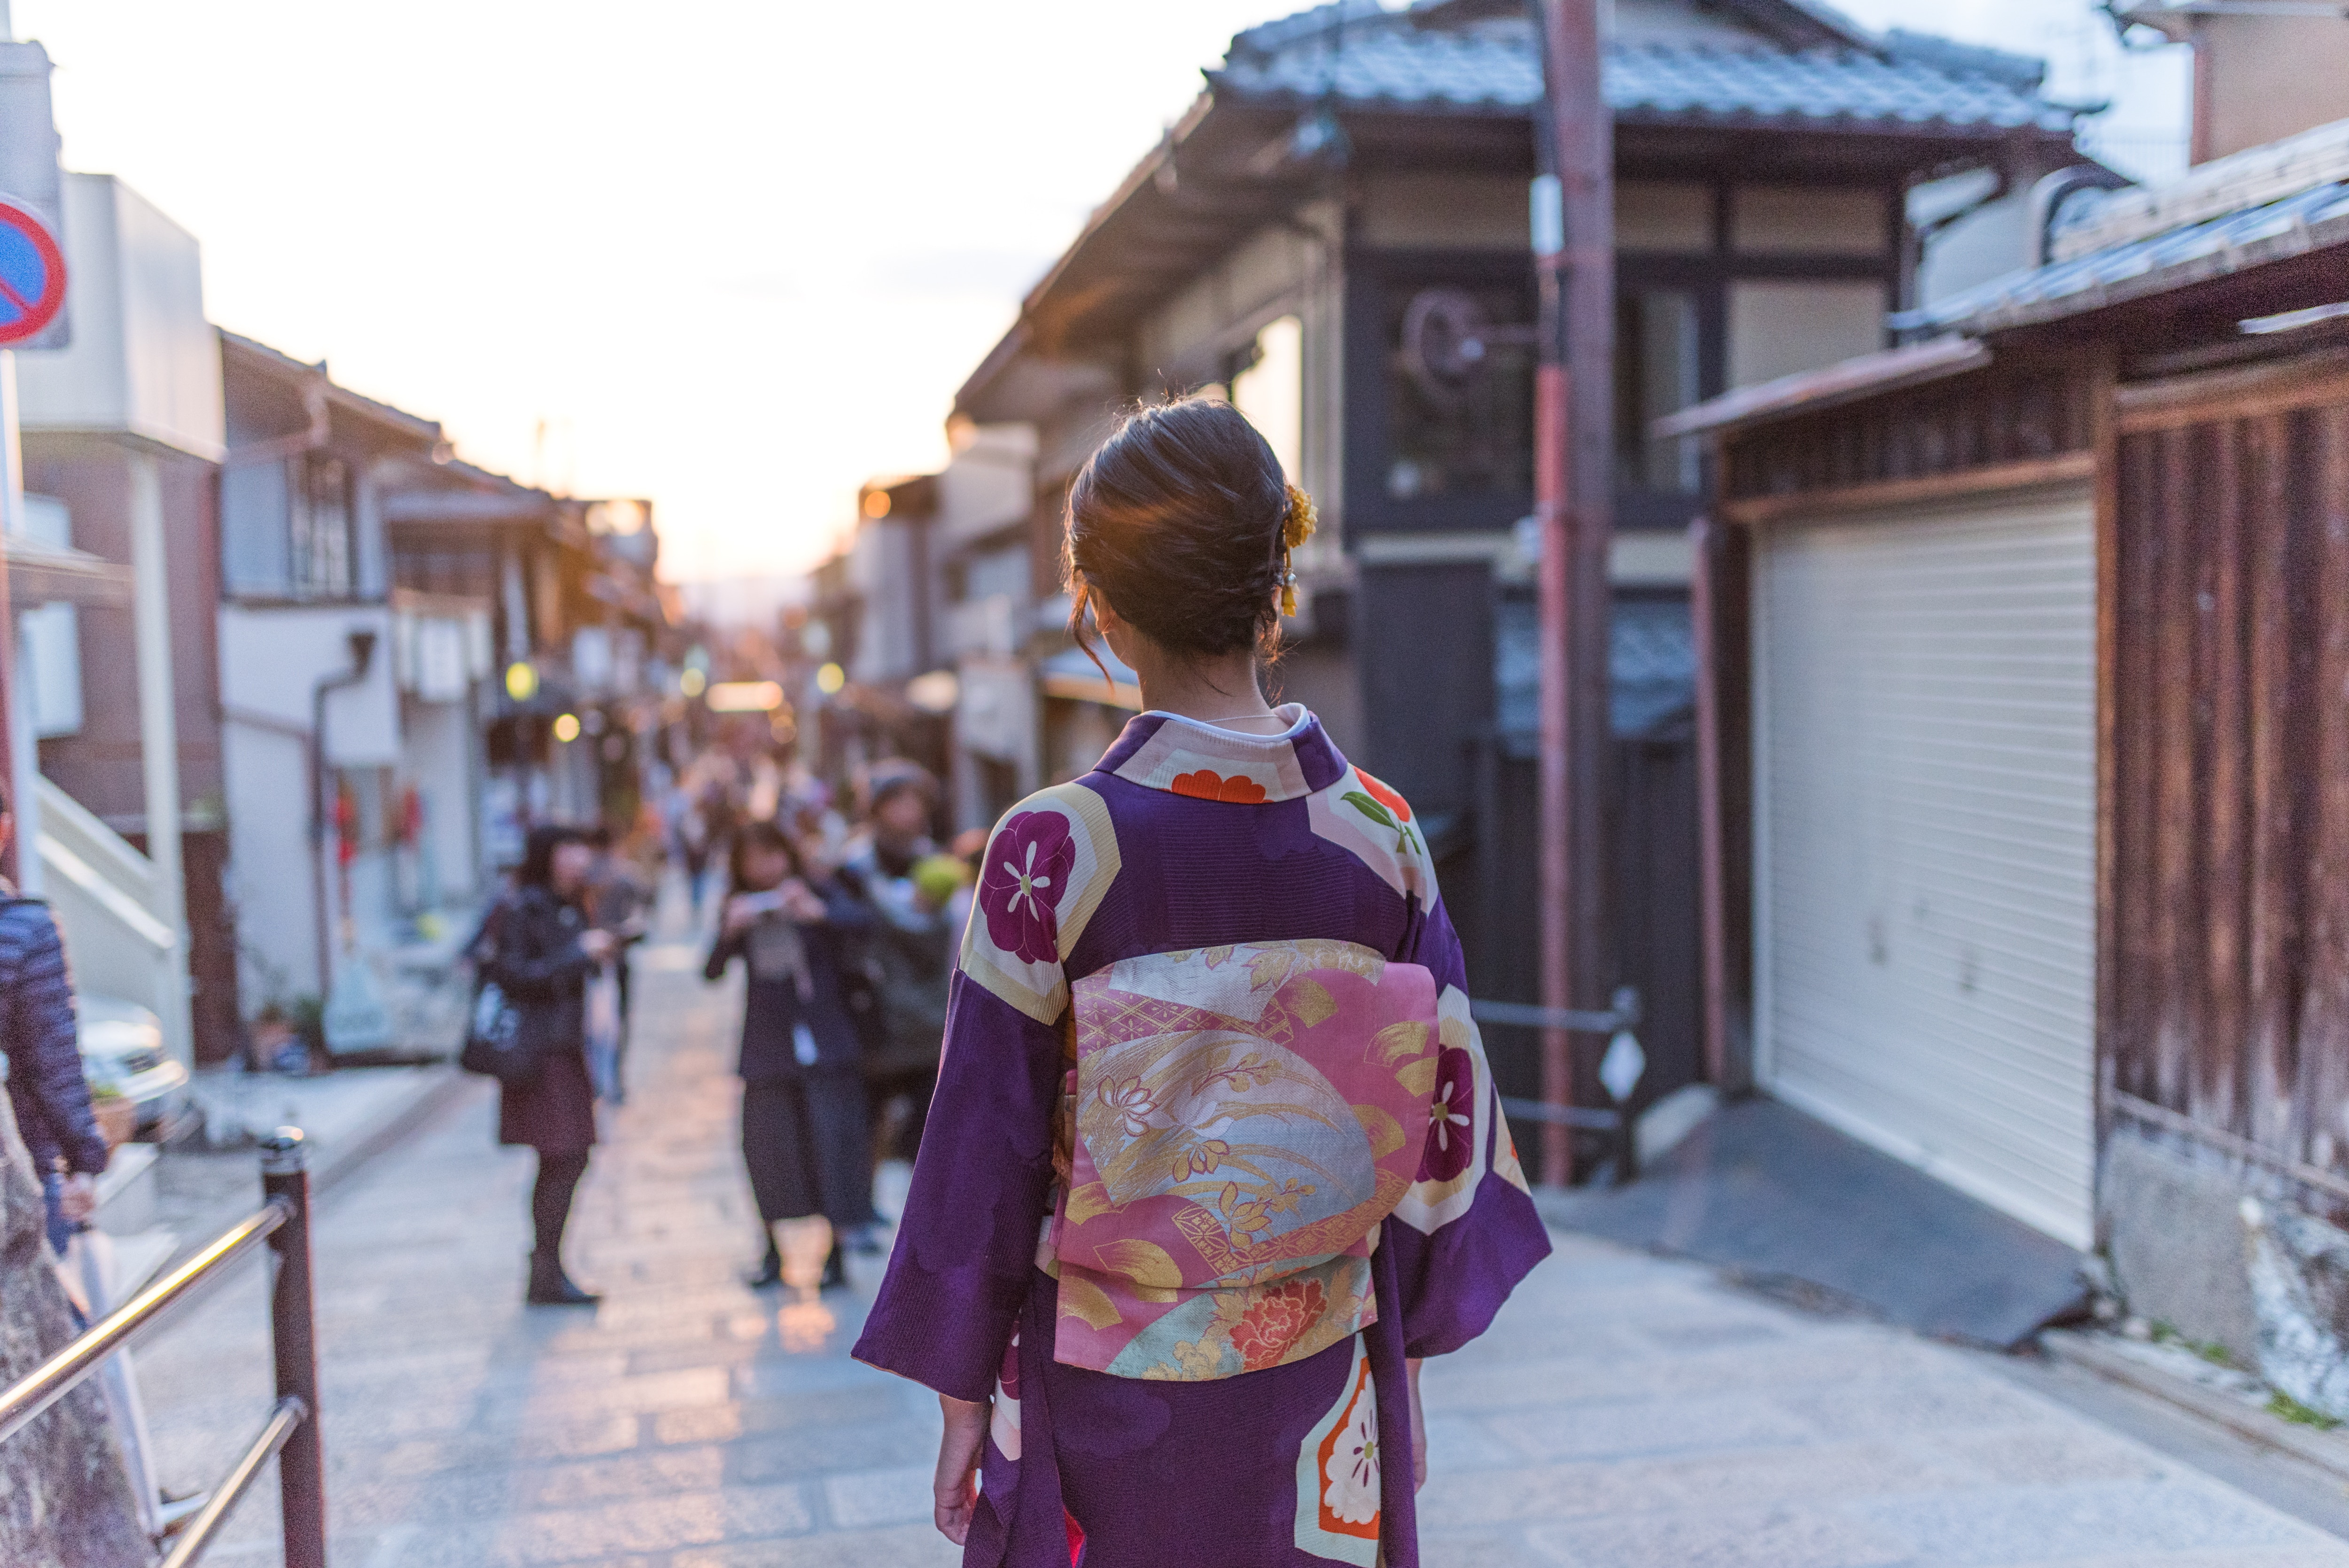 Kimonos are what to buy in Japan